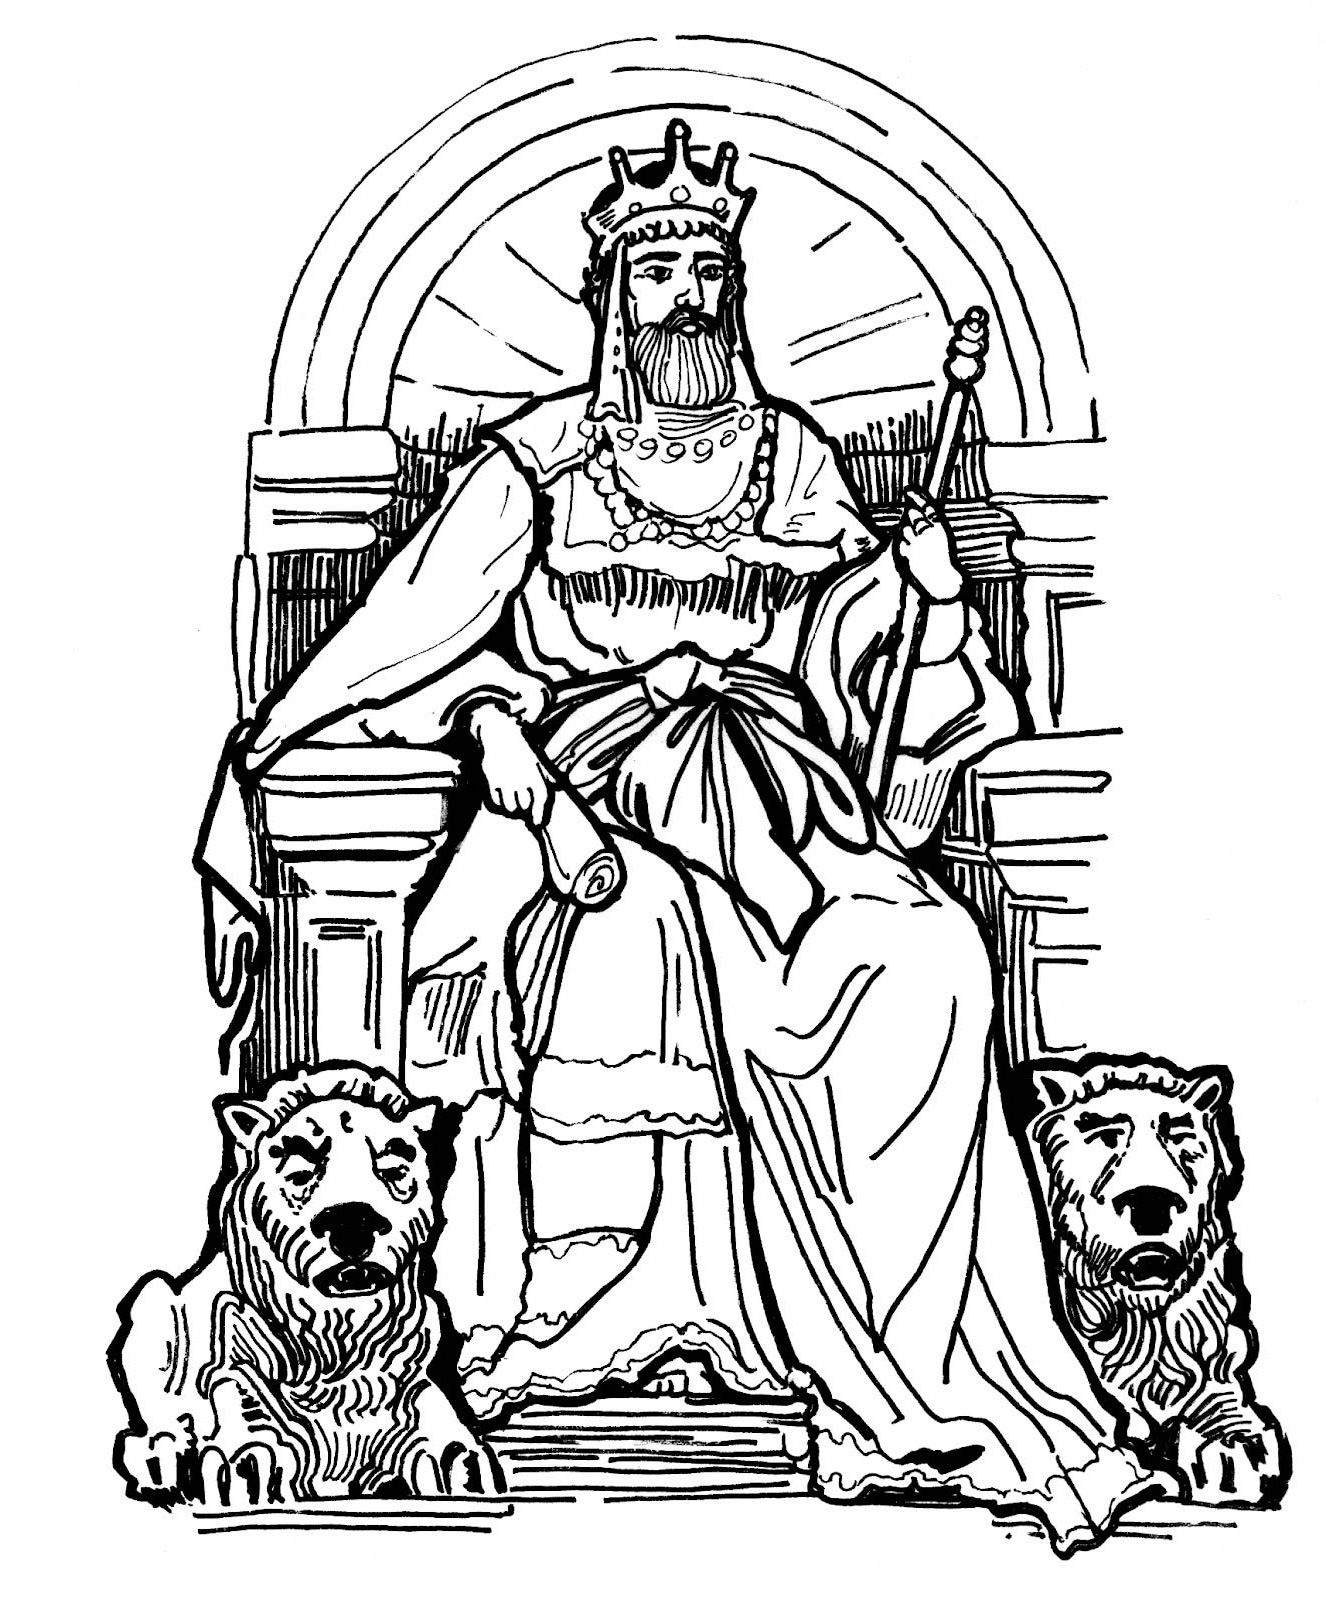 christian youth coloring pages - photo#33